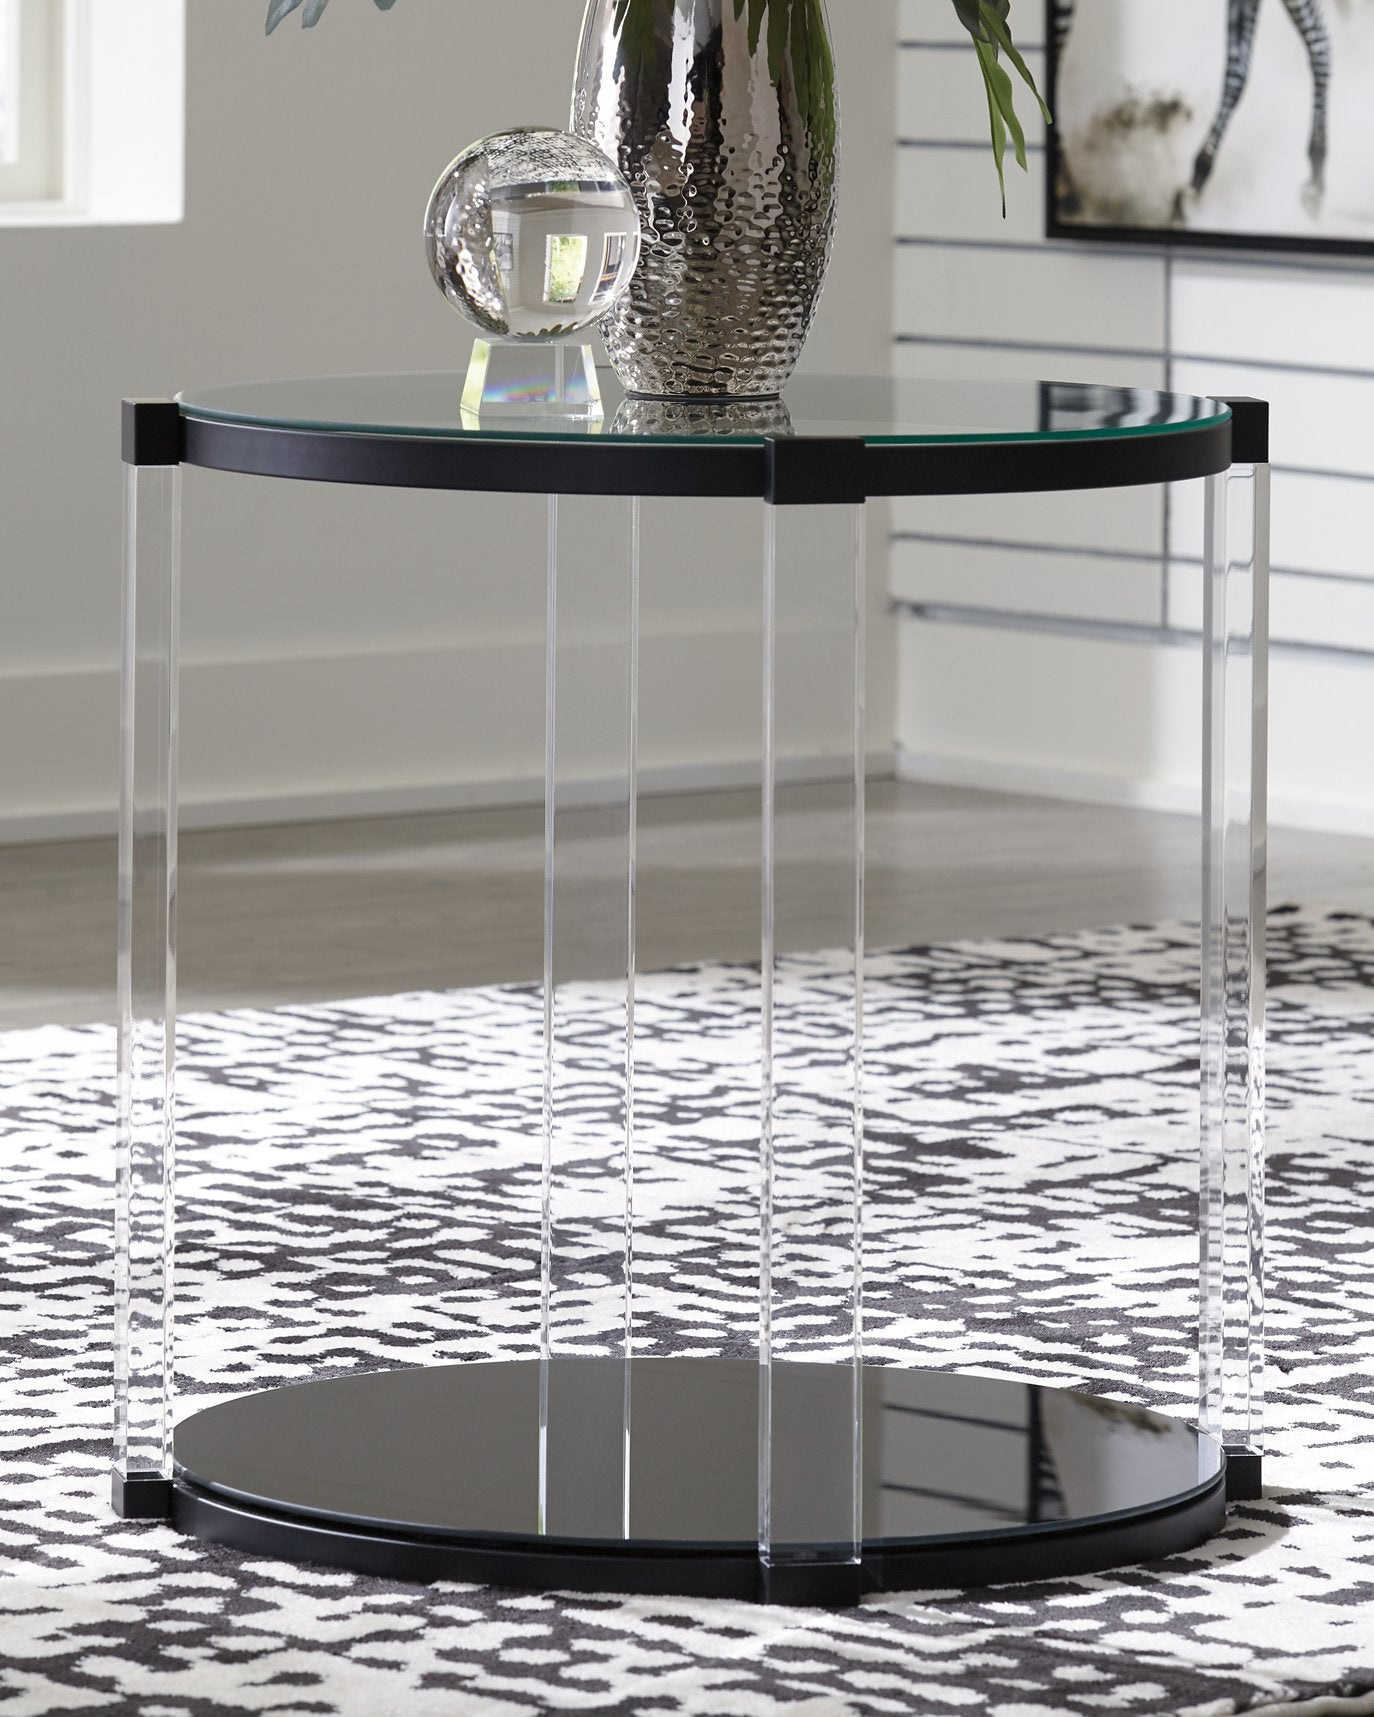 Delsiny Signature Design by Ashley End Table image